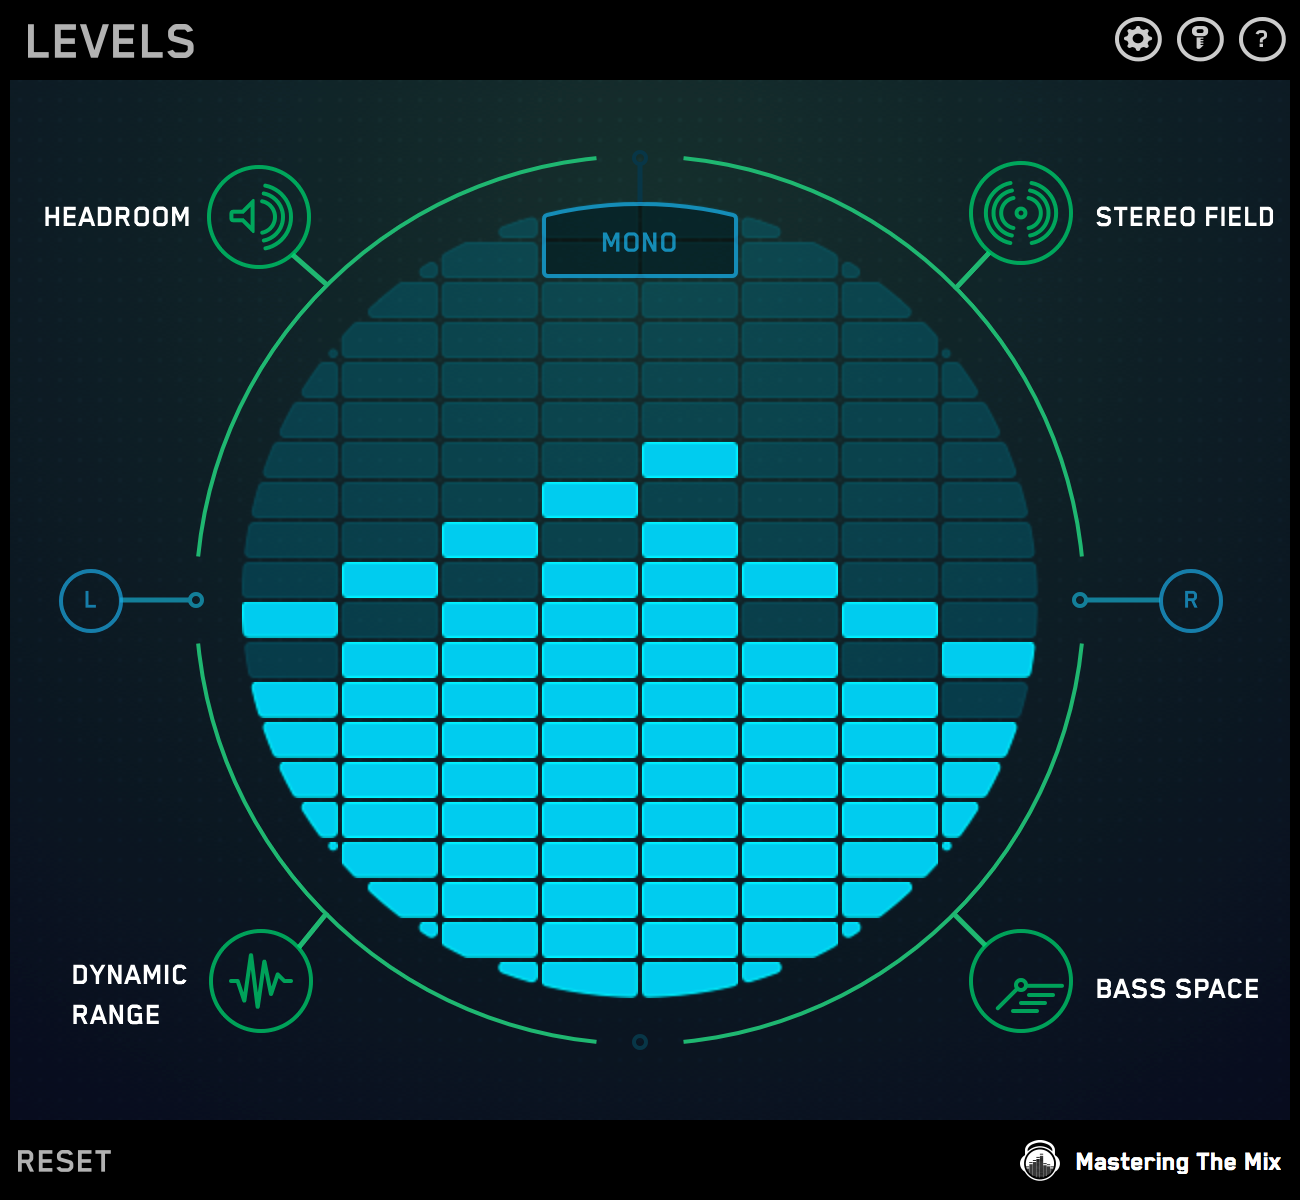 levels home page